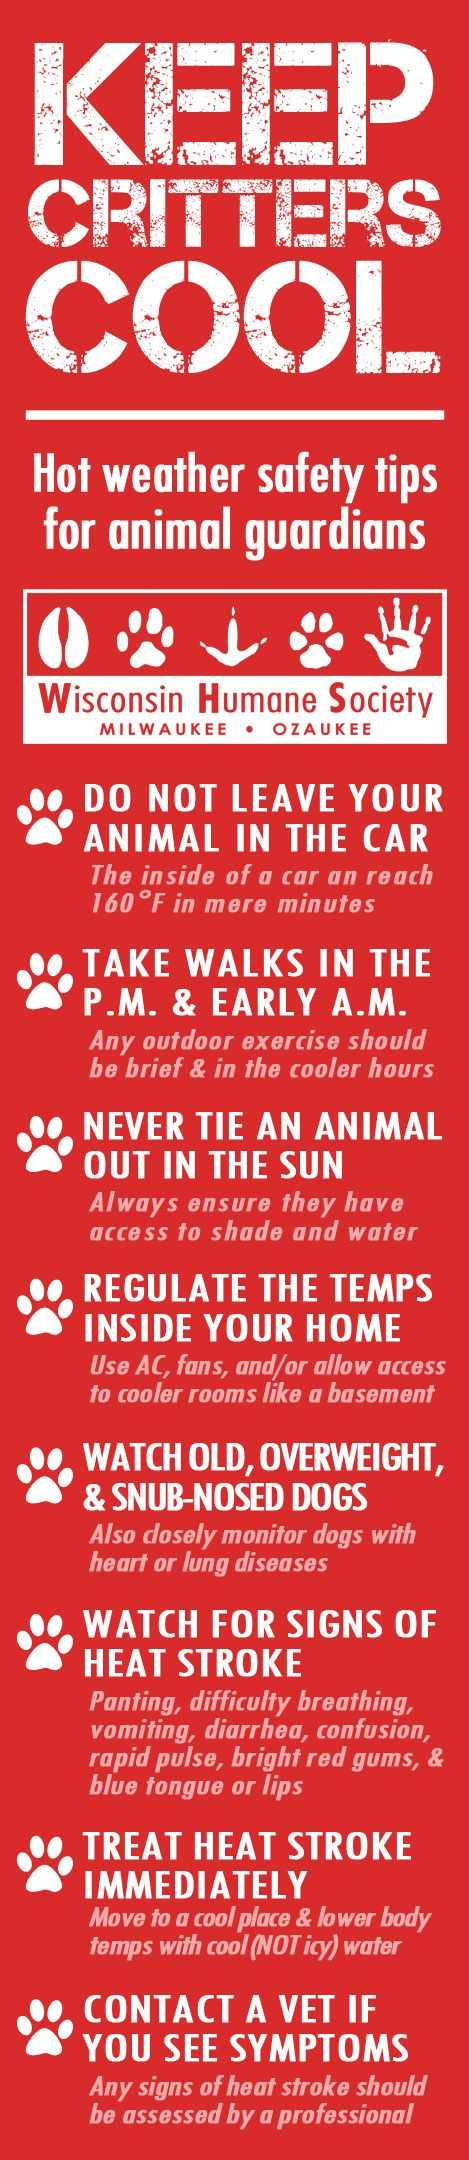 Keep your animals safe during hot summer months!: Summer Months, Animals Safe, Summer Safety, Pets Safe, Healthy Pets, Friend, Pet Tips, Hot Summer